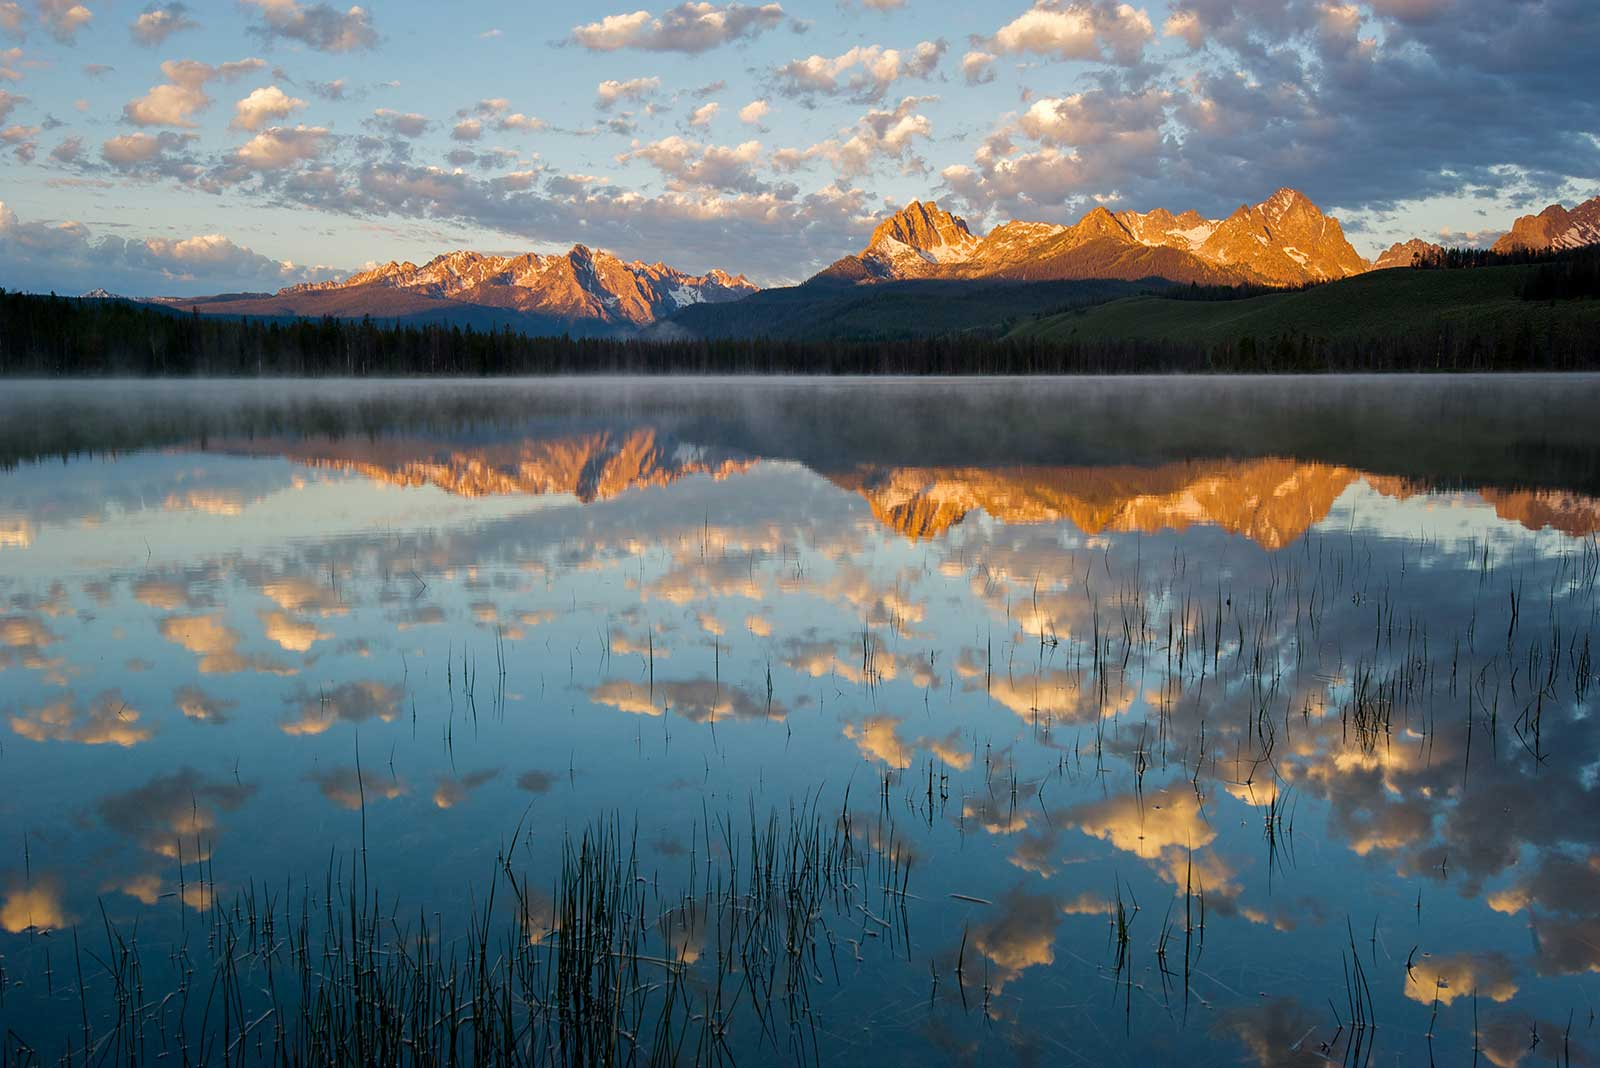 Protected: Sawtooth National Recreation Area - USA